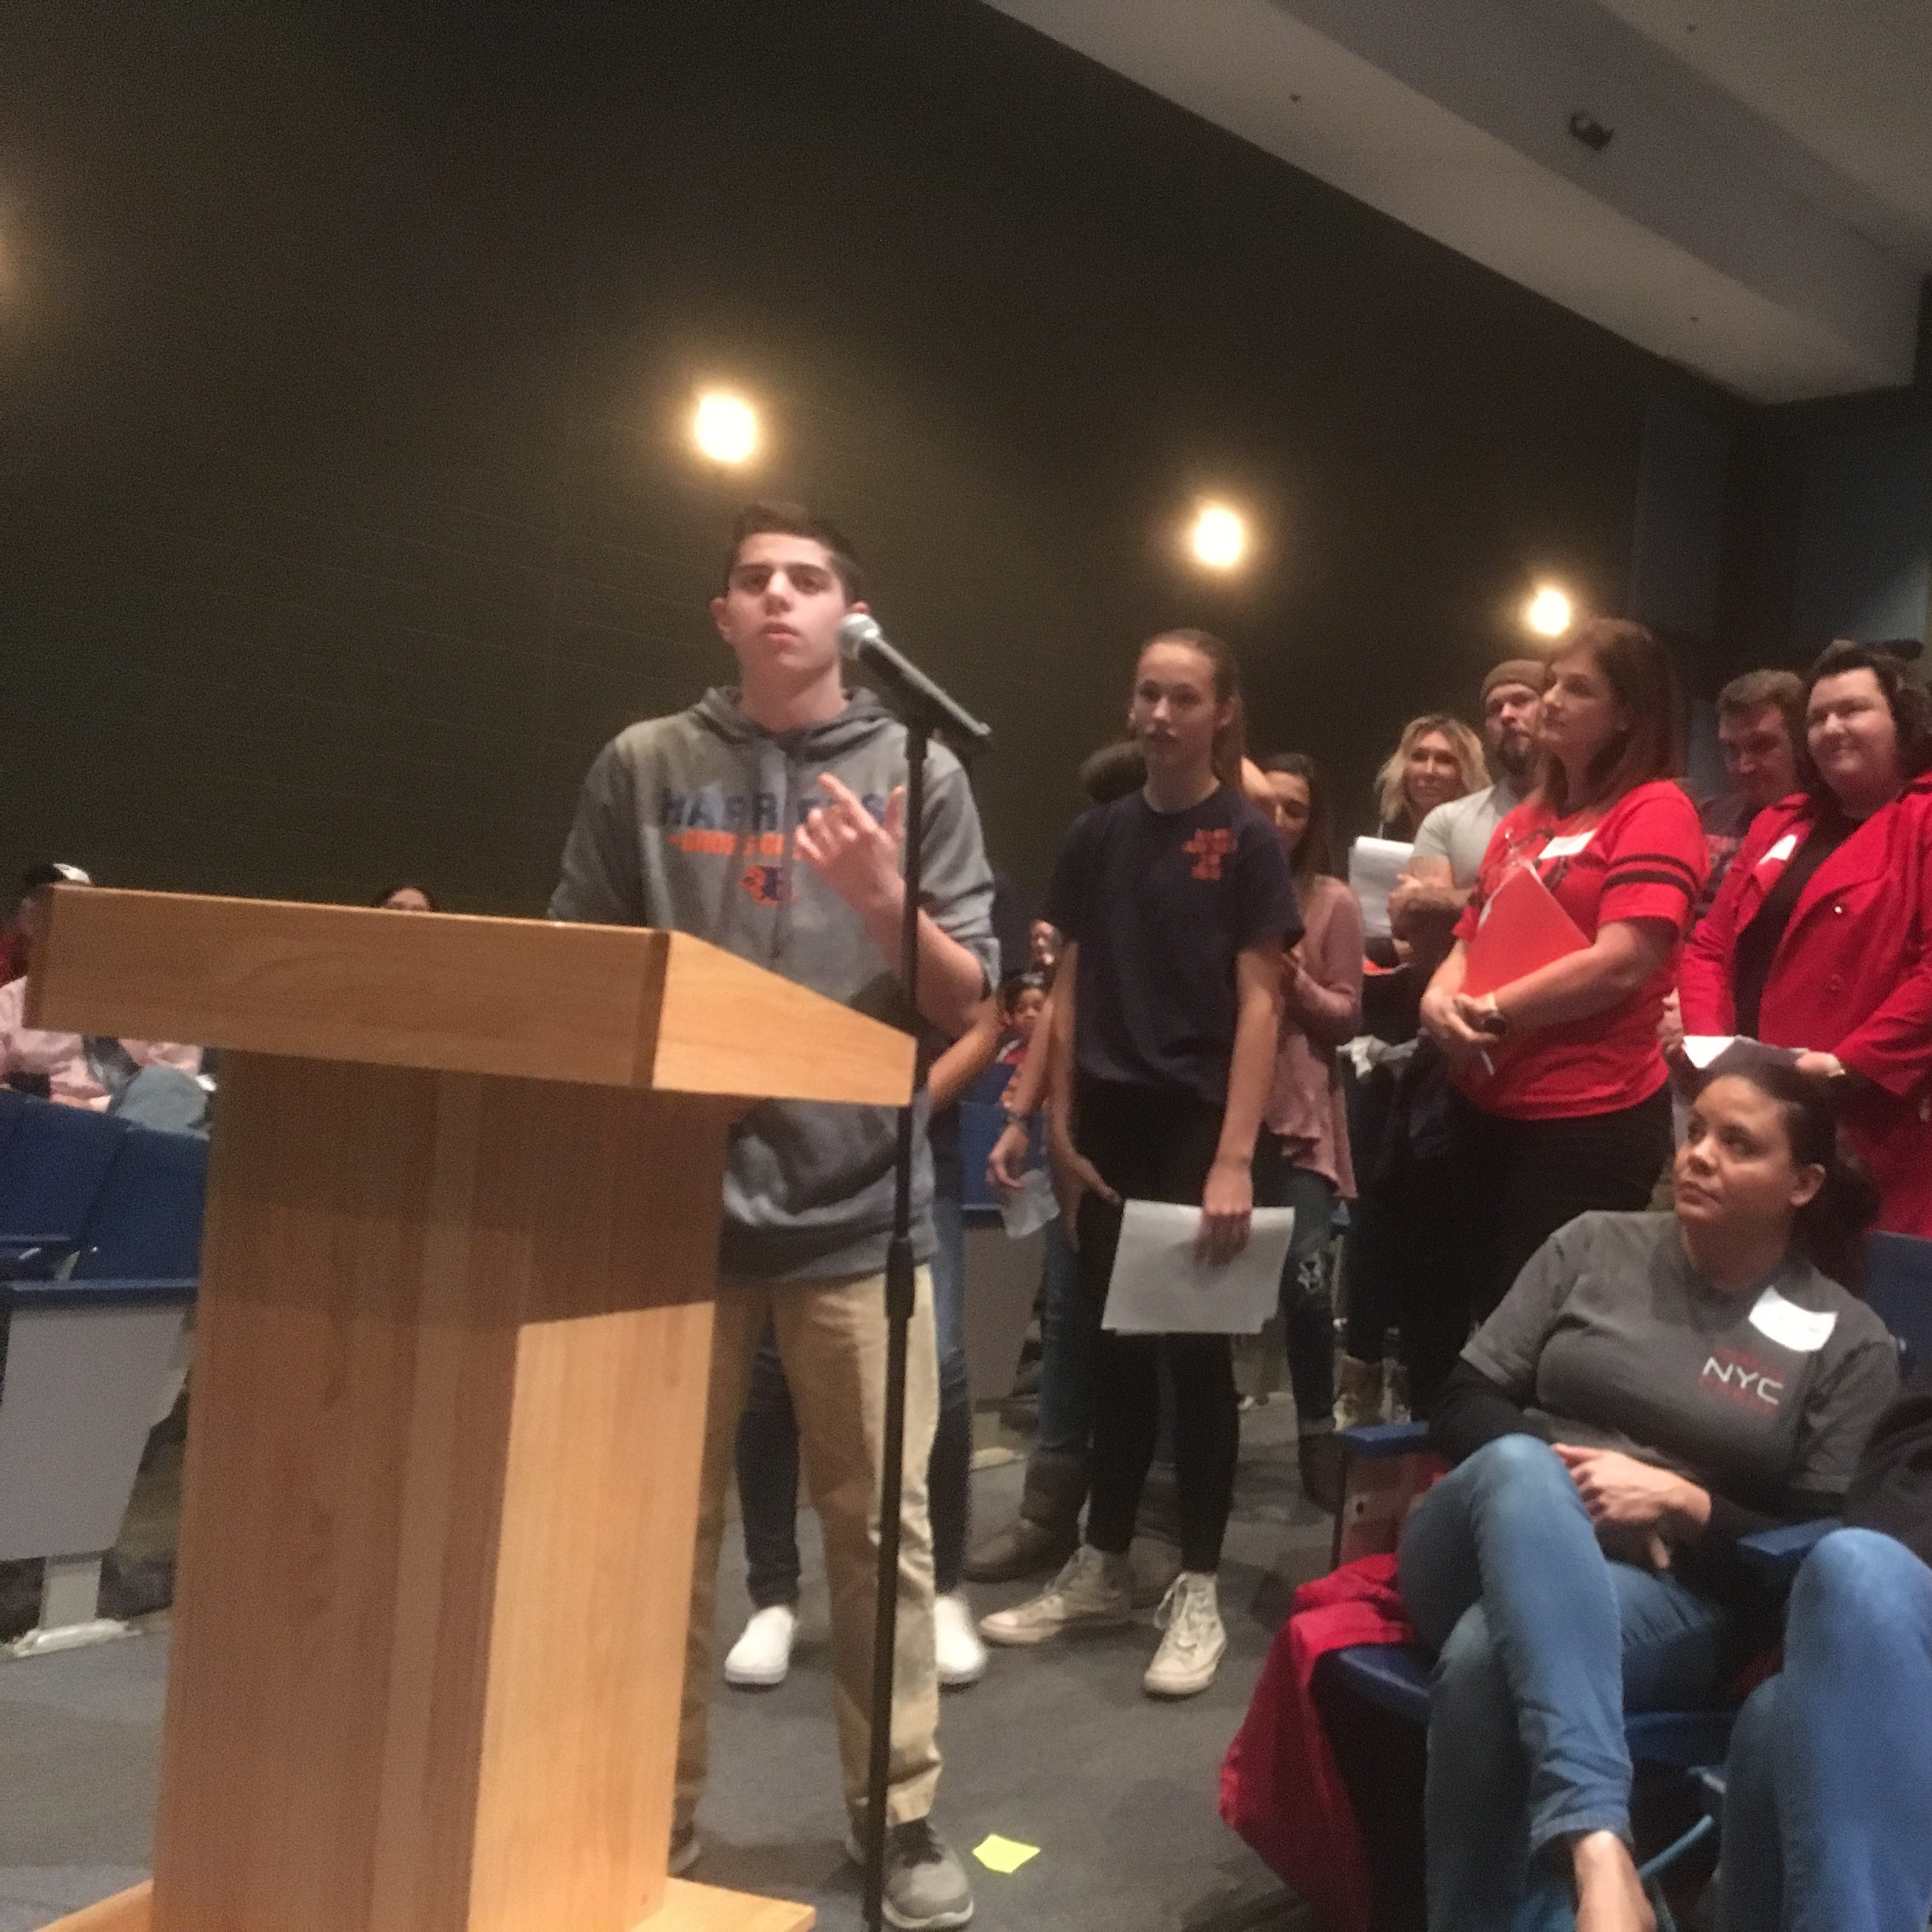 Long commute to Rockvale HS after proposed rezoning worries Rutherford County families